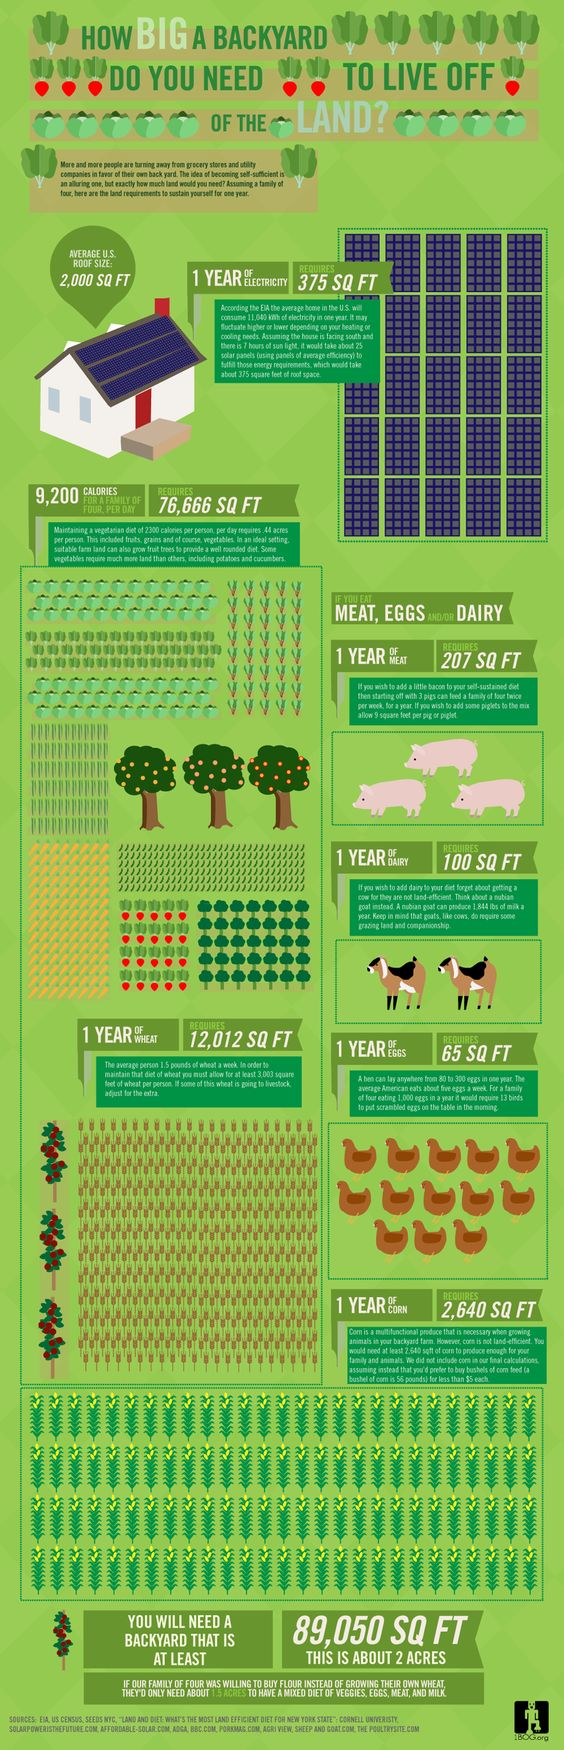 This is what I need for my farm. But a cow instead of goats...and throw in a couple sheep and a steer or two.